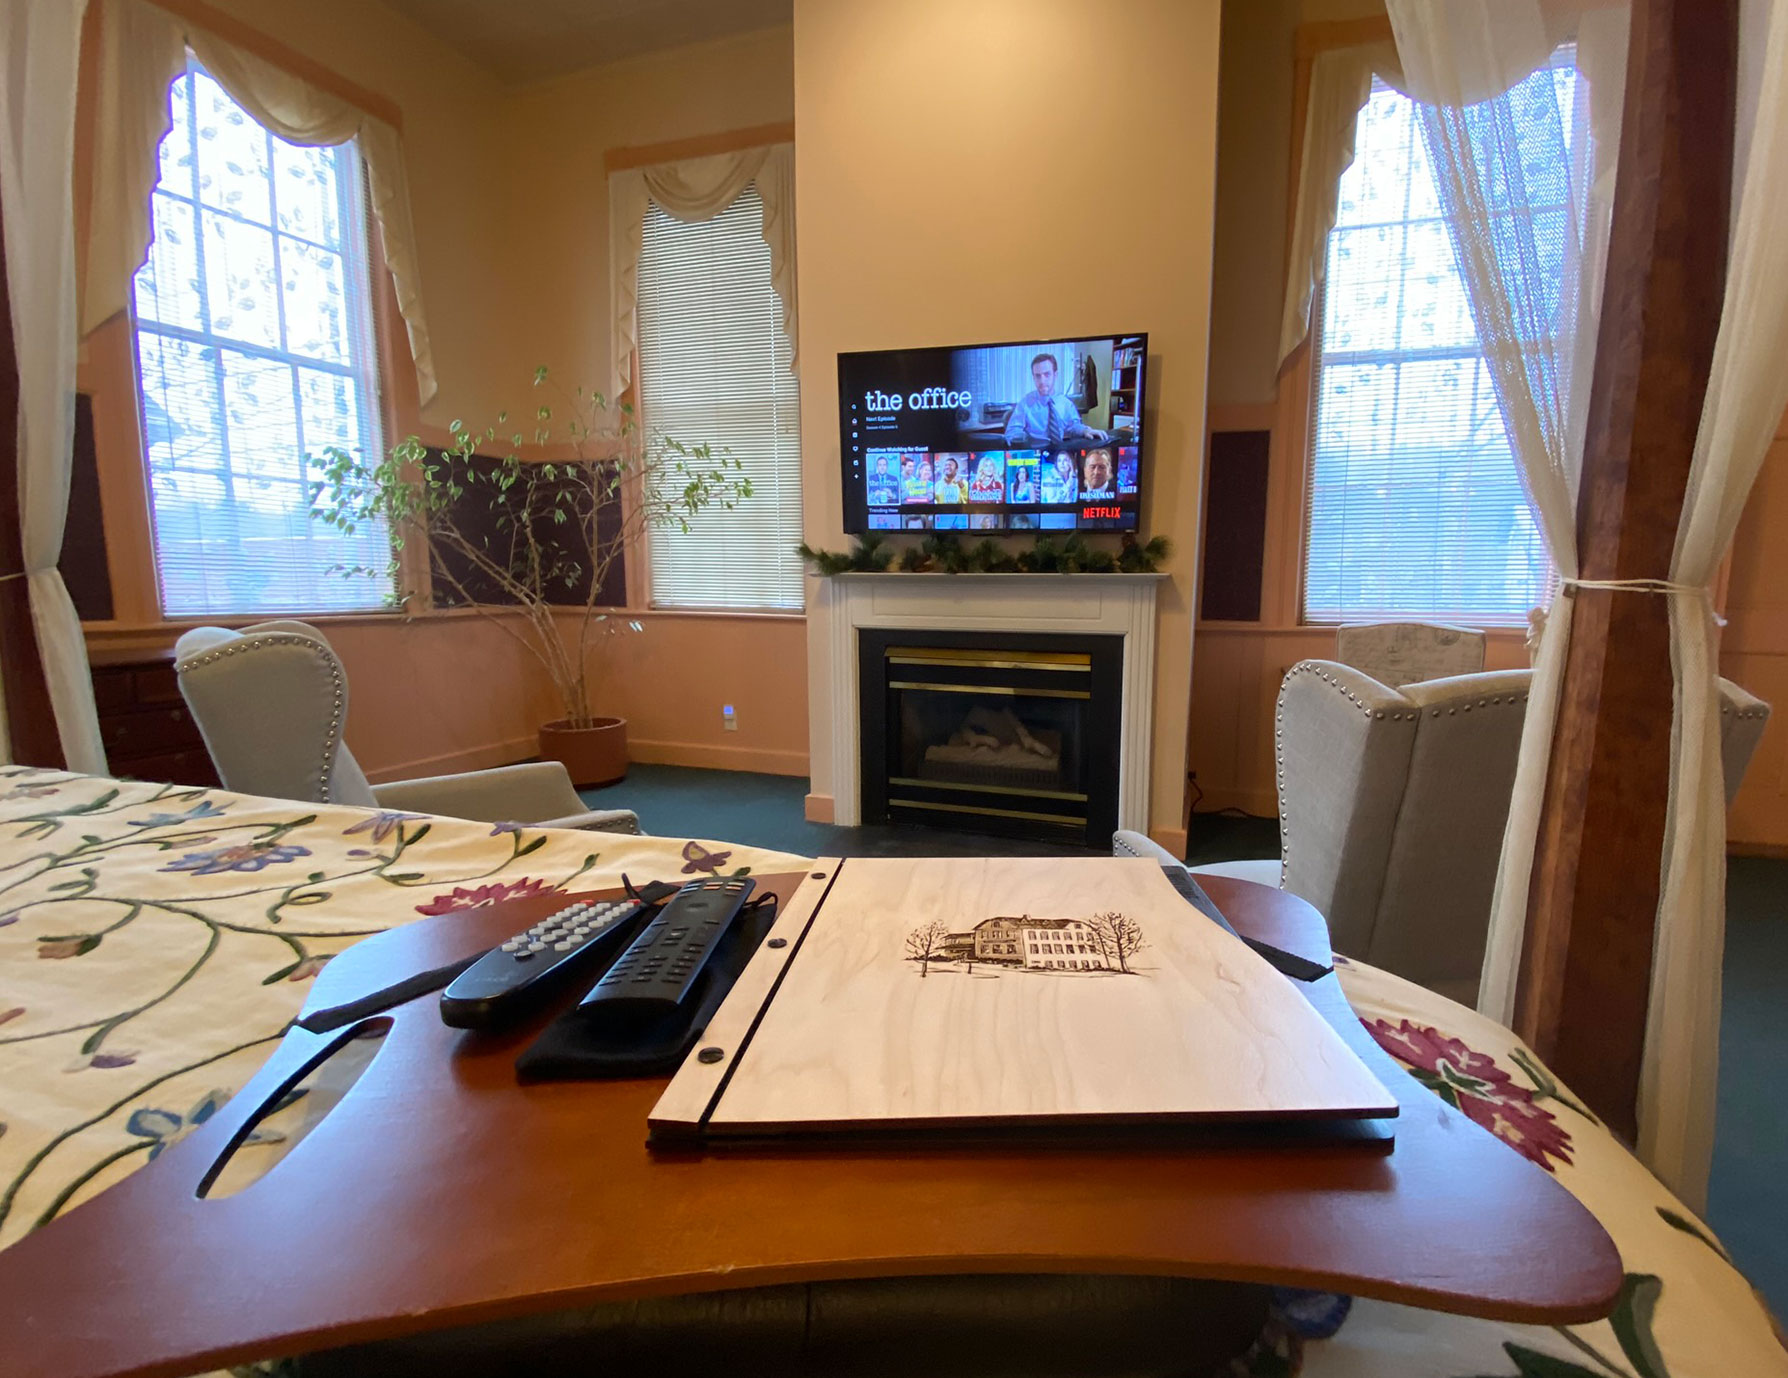 Remotes and guide book on lap desk on bed - Berkshires Lodging